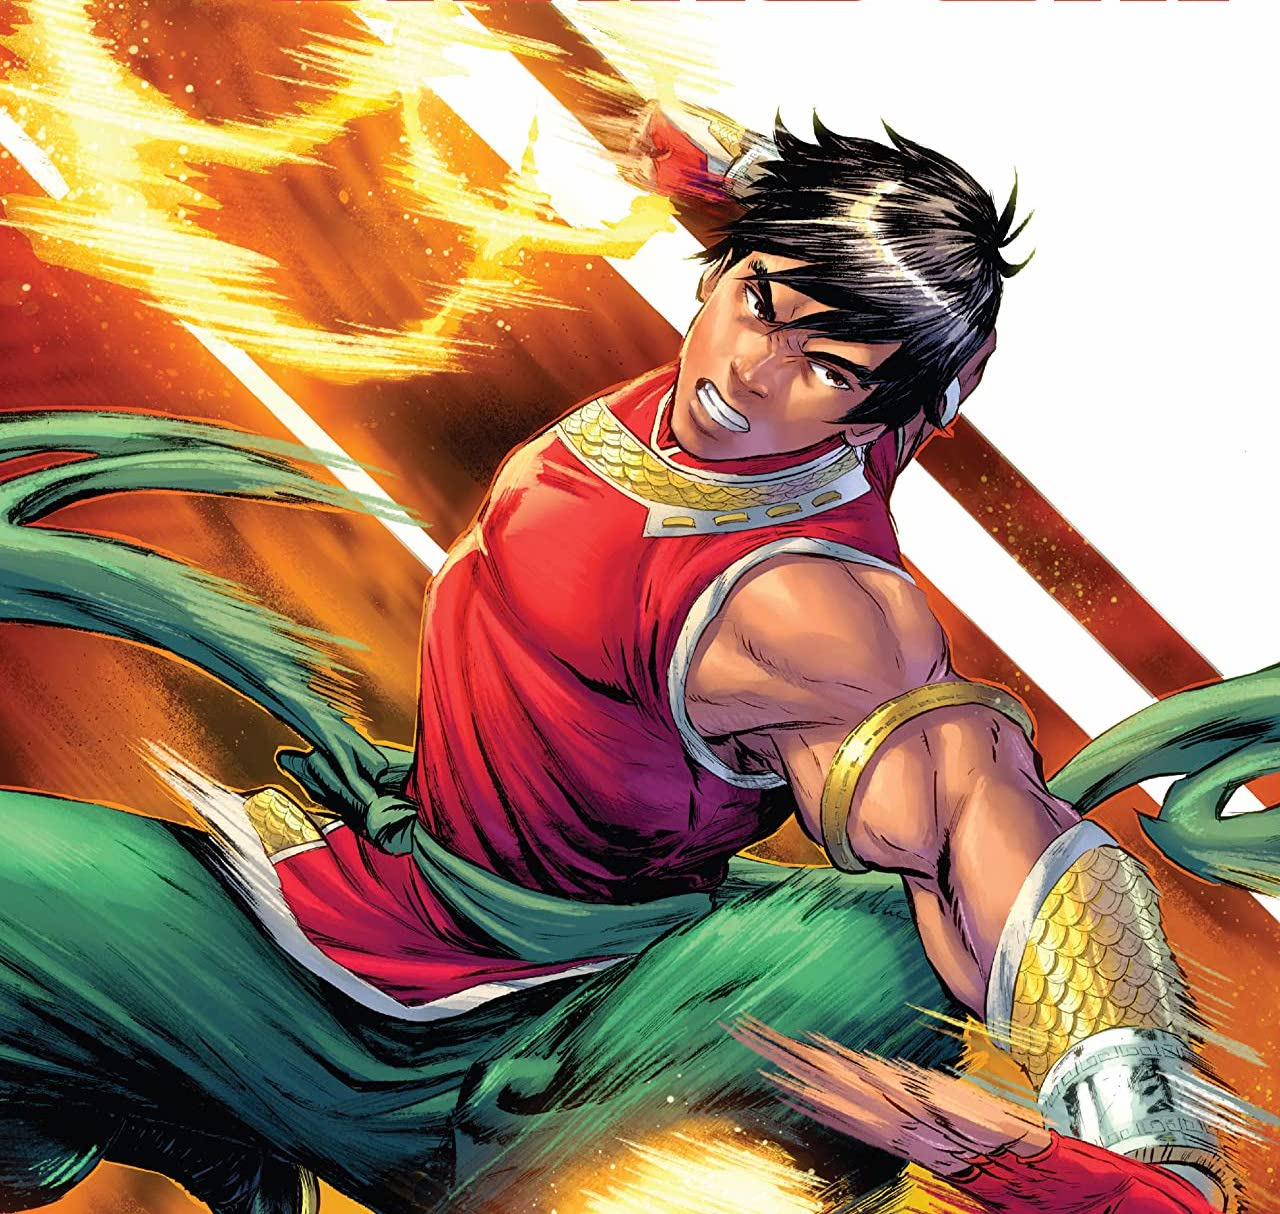 'The Legend of Shang-Chi' #1 review